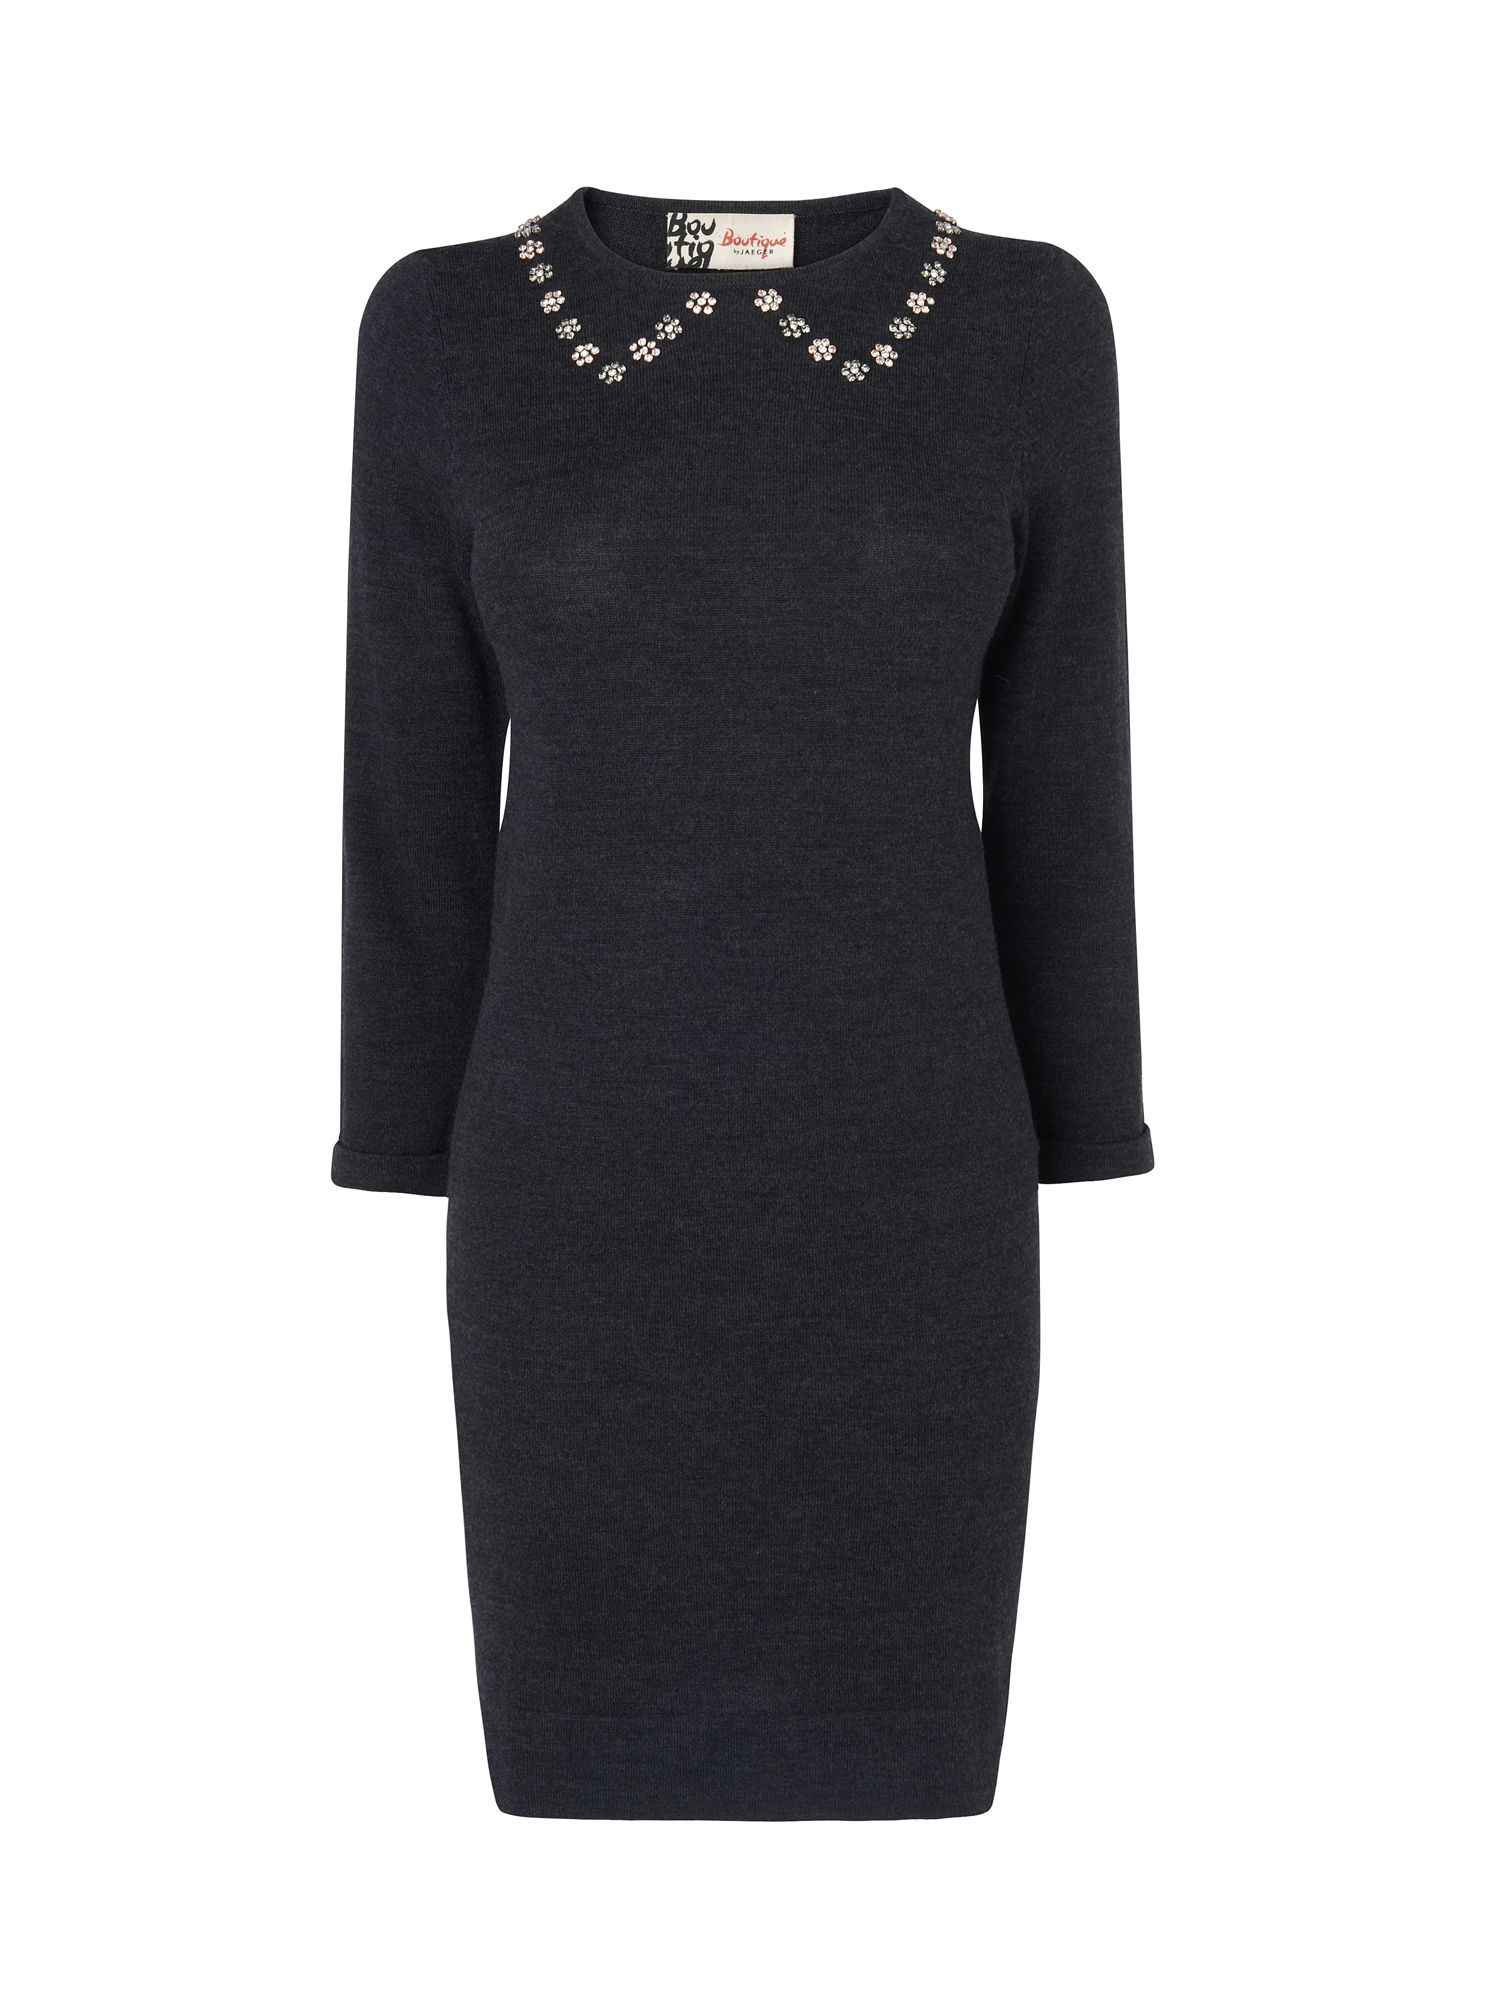 Gem collar knitted dress